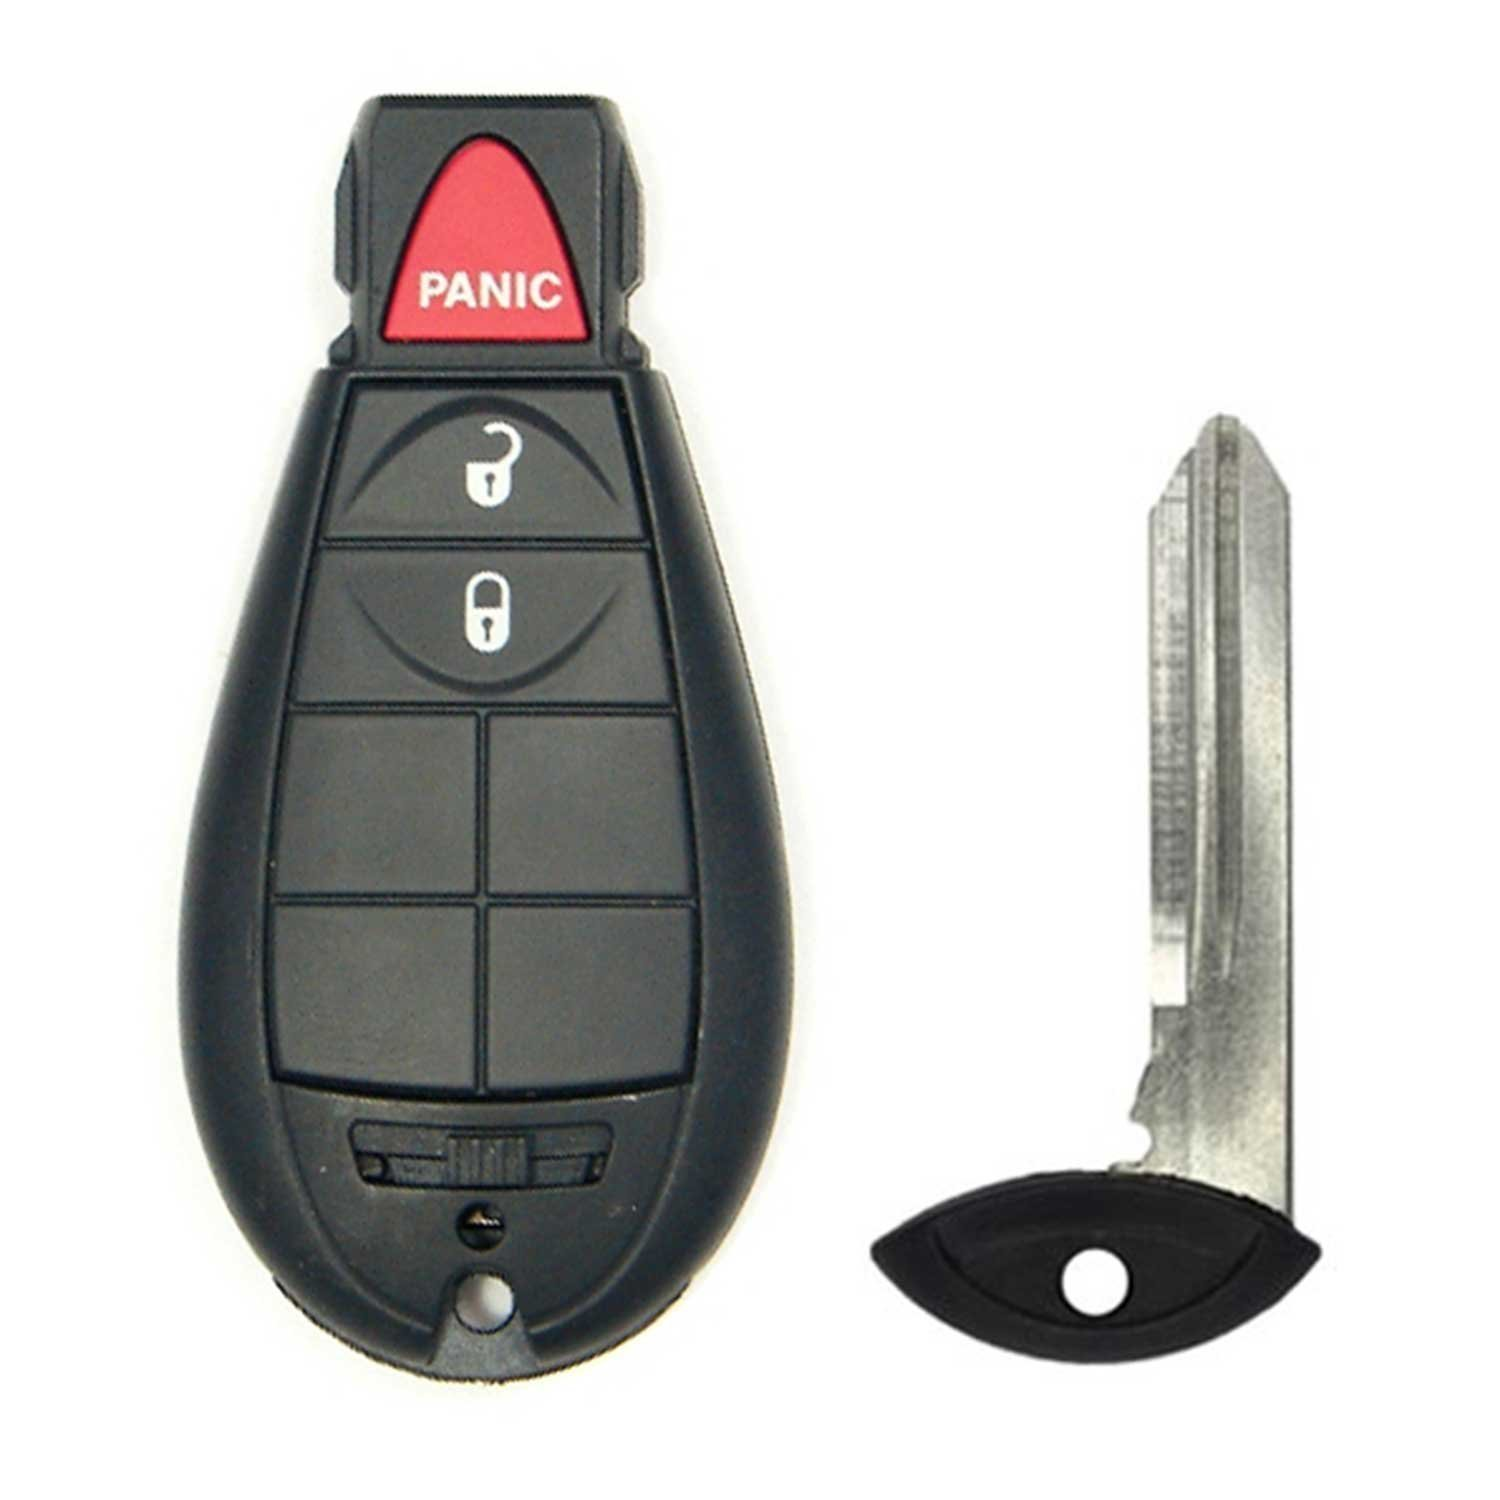 2010 chrysler town and country key fob problems